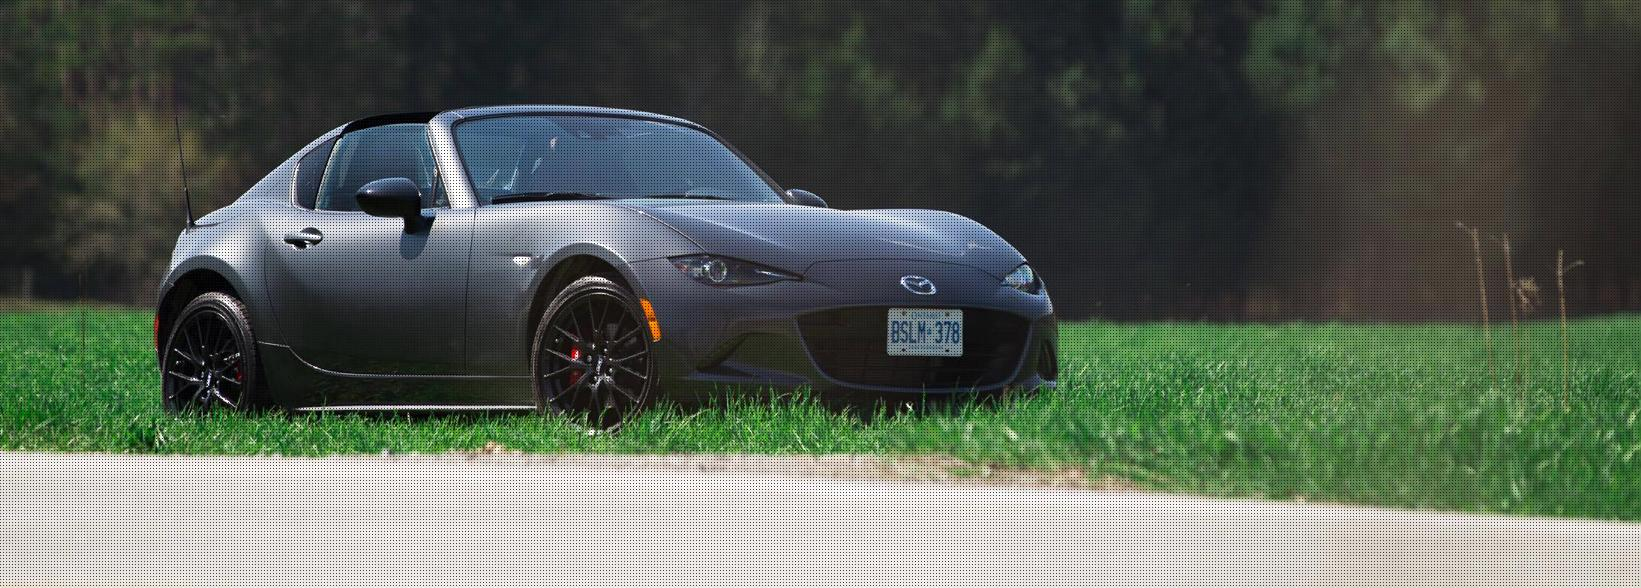 2017 Mazda MX-5 RF: Driving pleasure all year round